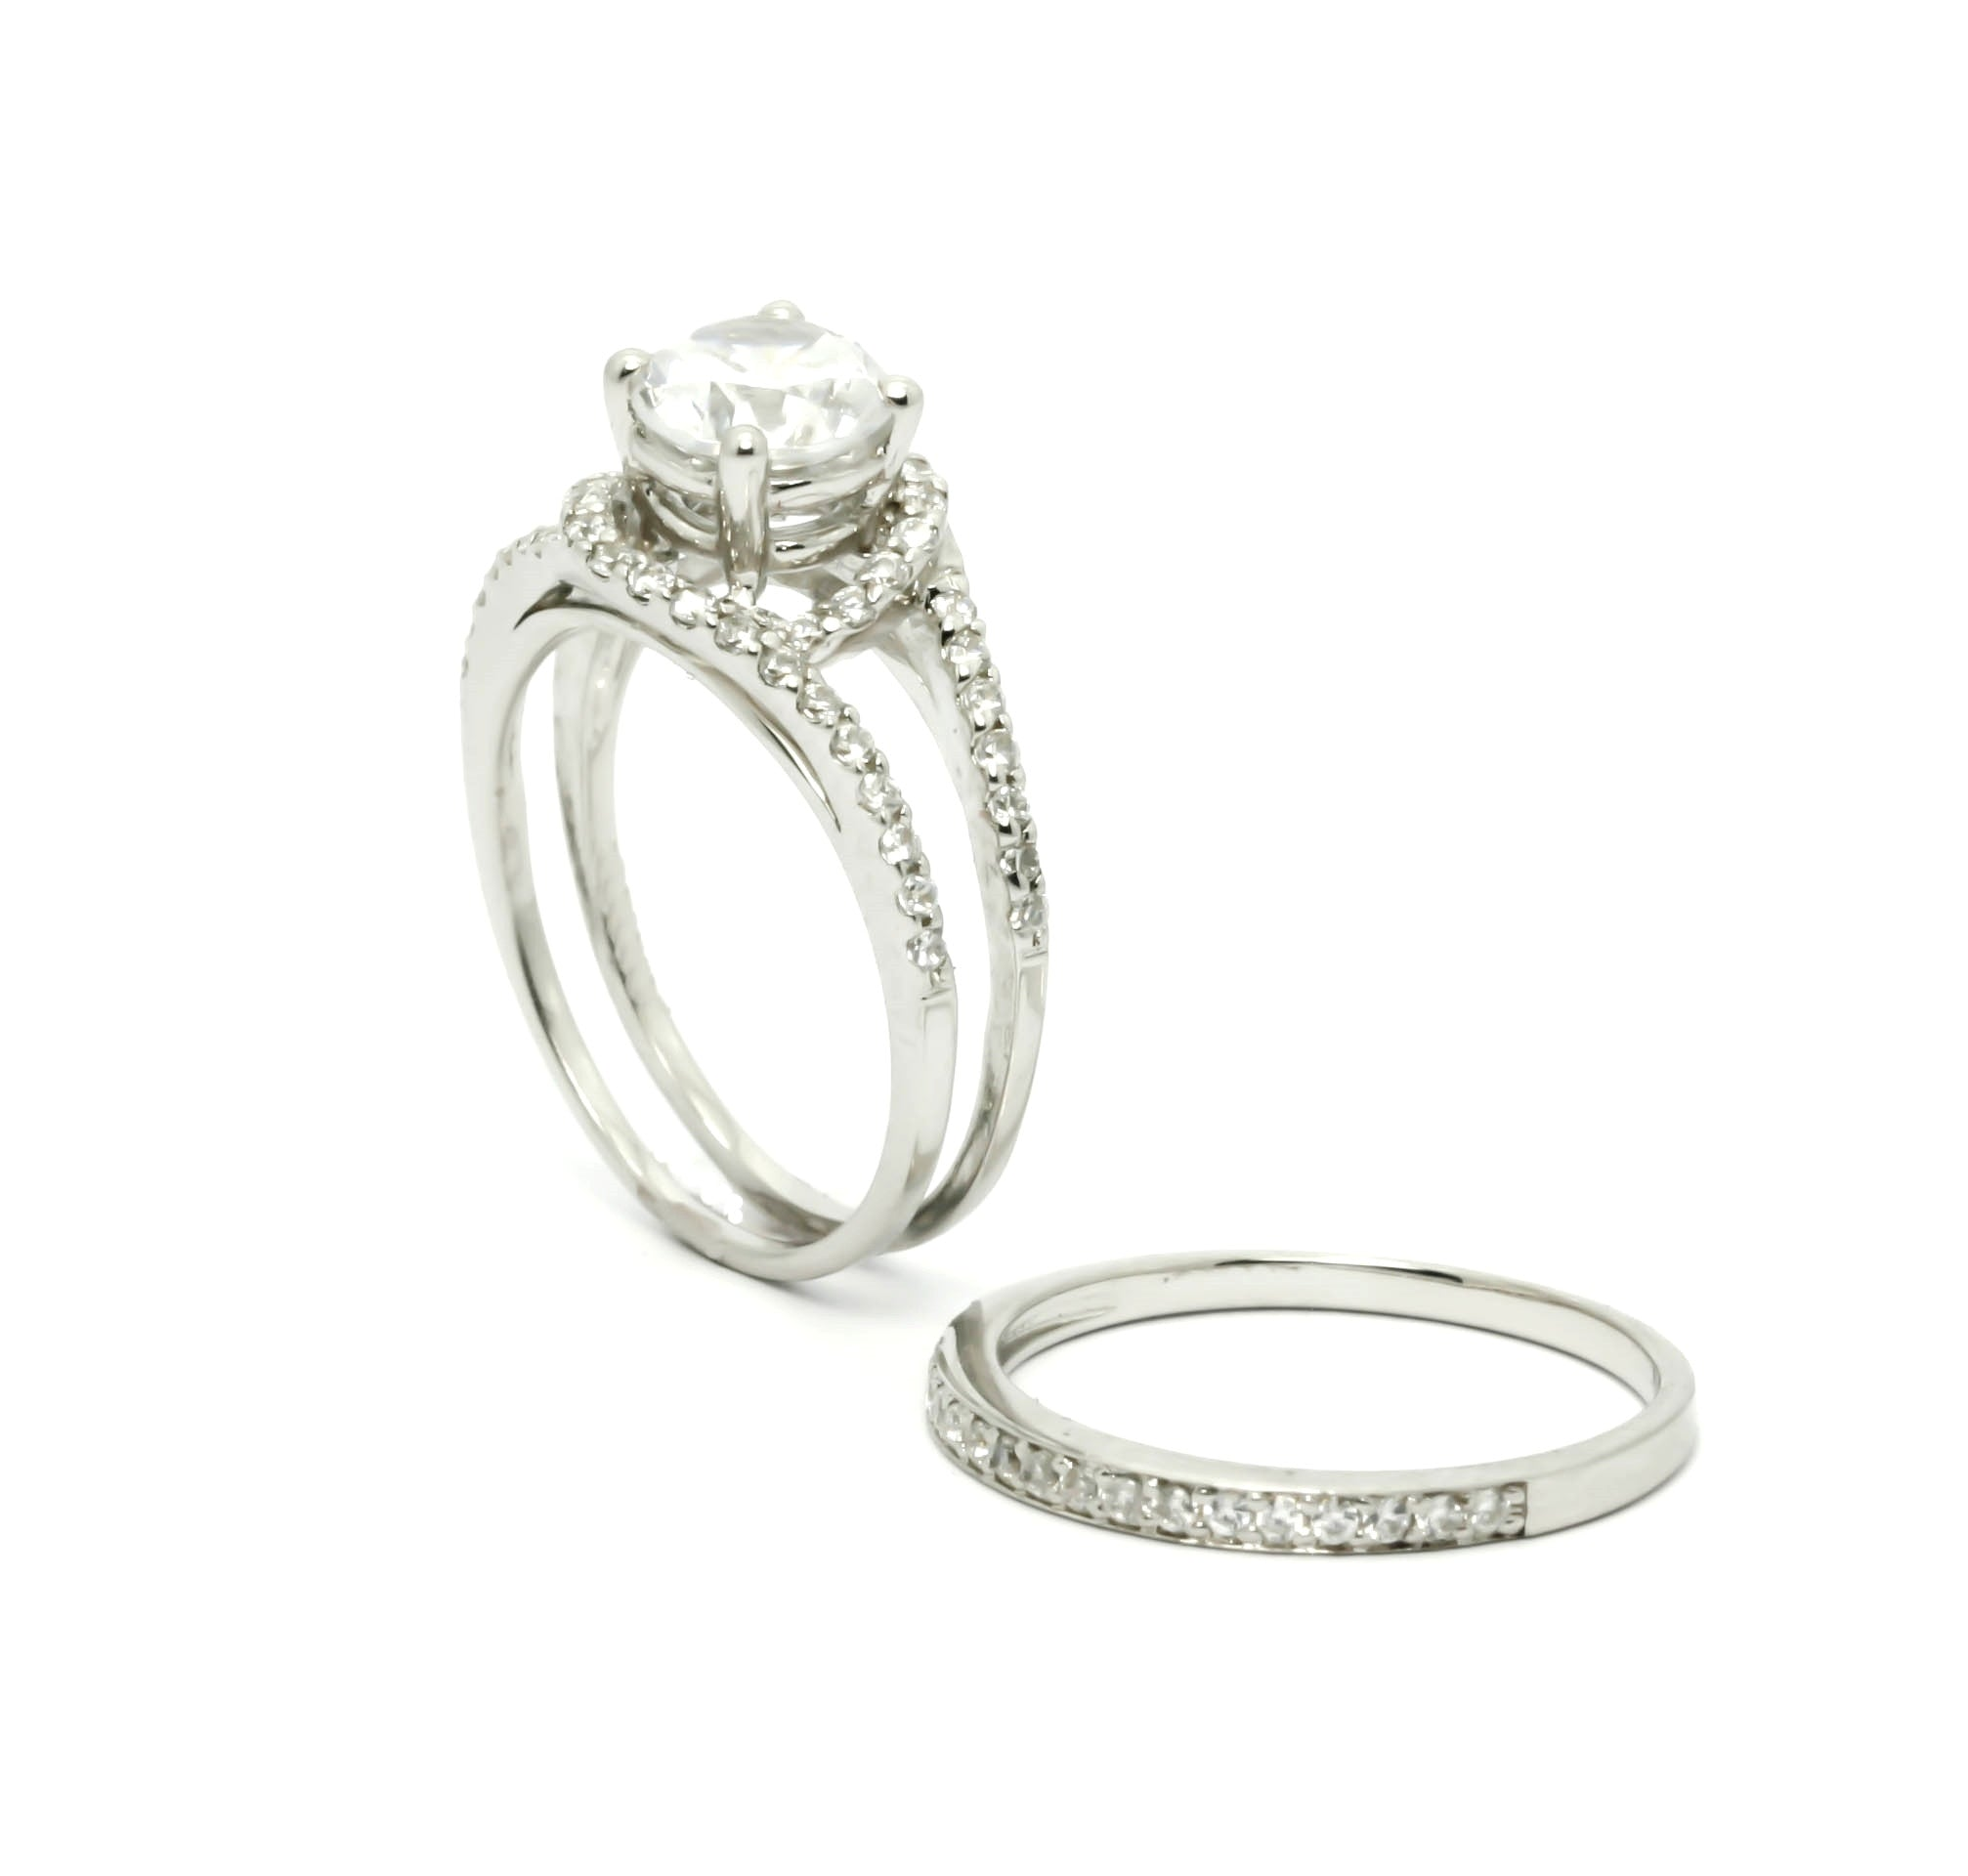 Semi Mount Unique Halo And Split Shank Design, Diamond Engagement/Wedding Set, For 1 Carat Center Stone Anniversary Ring - Y11580